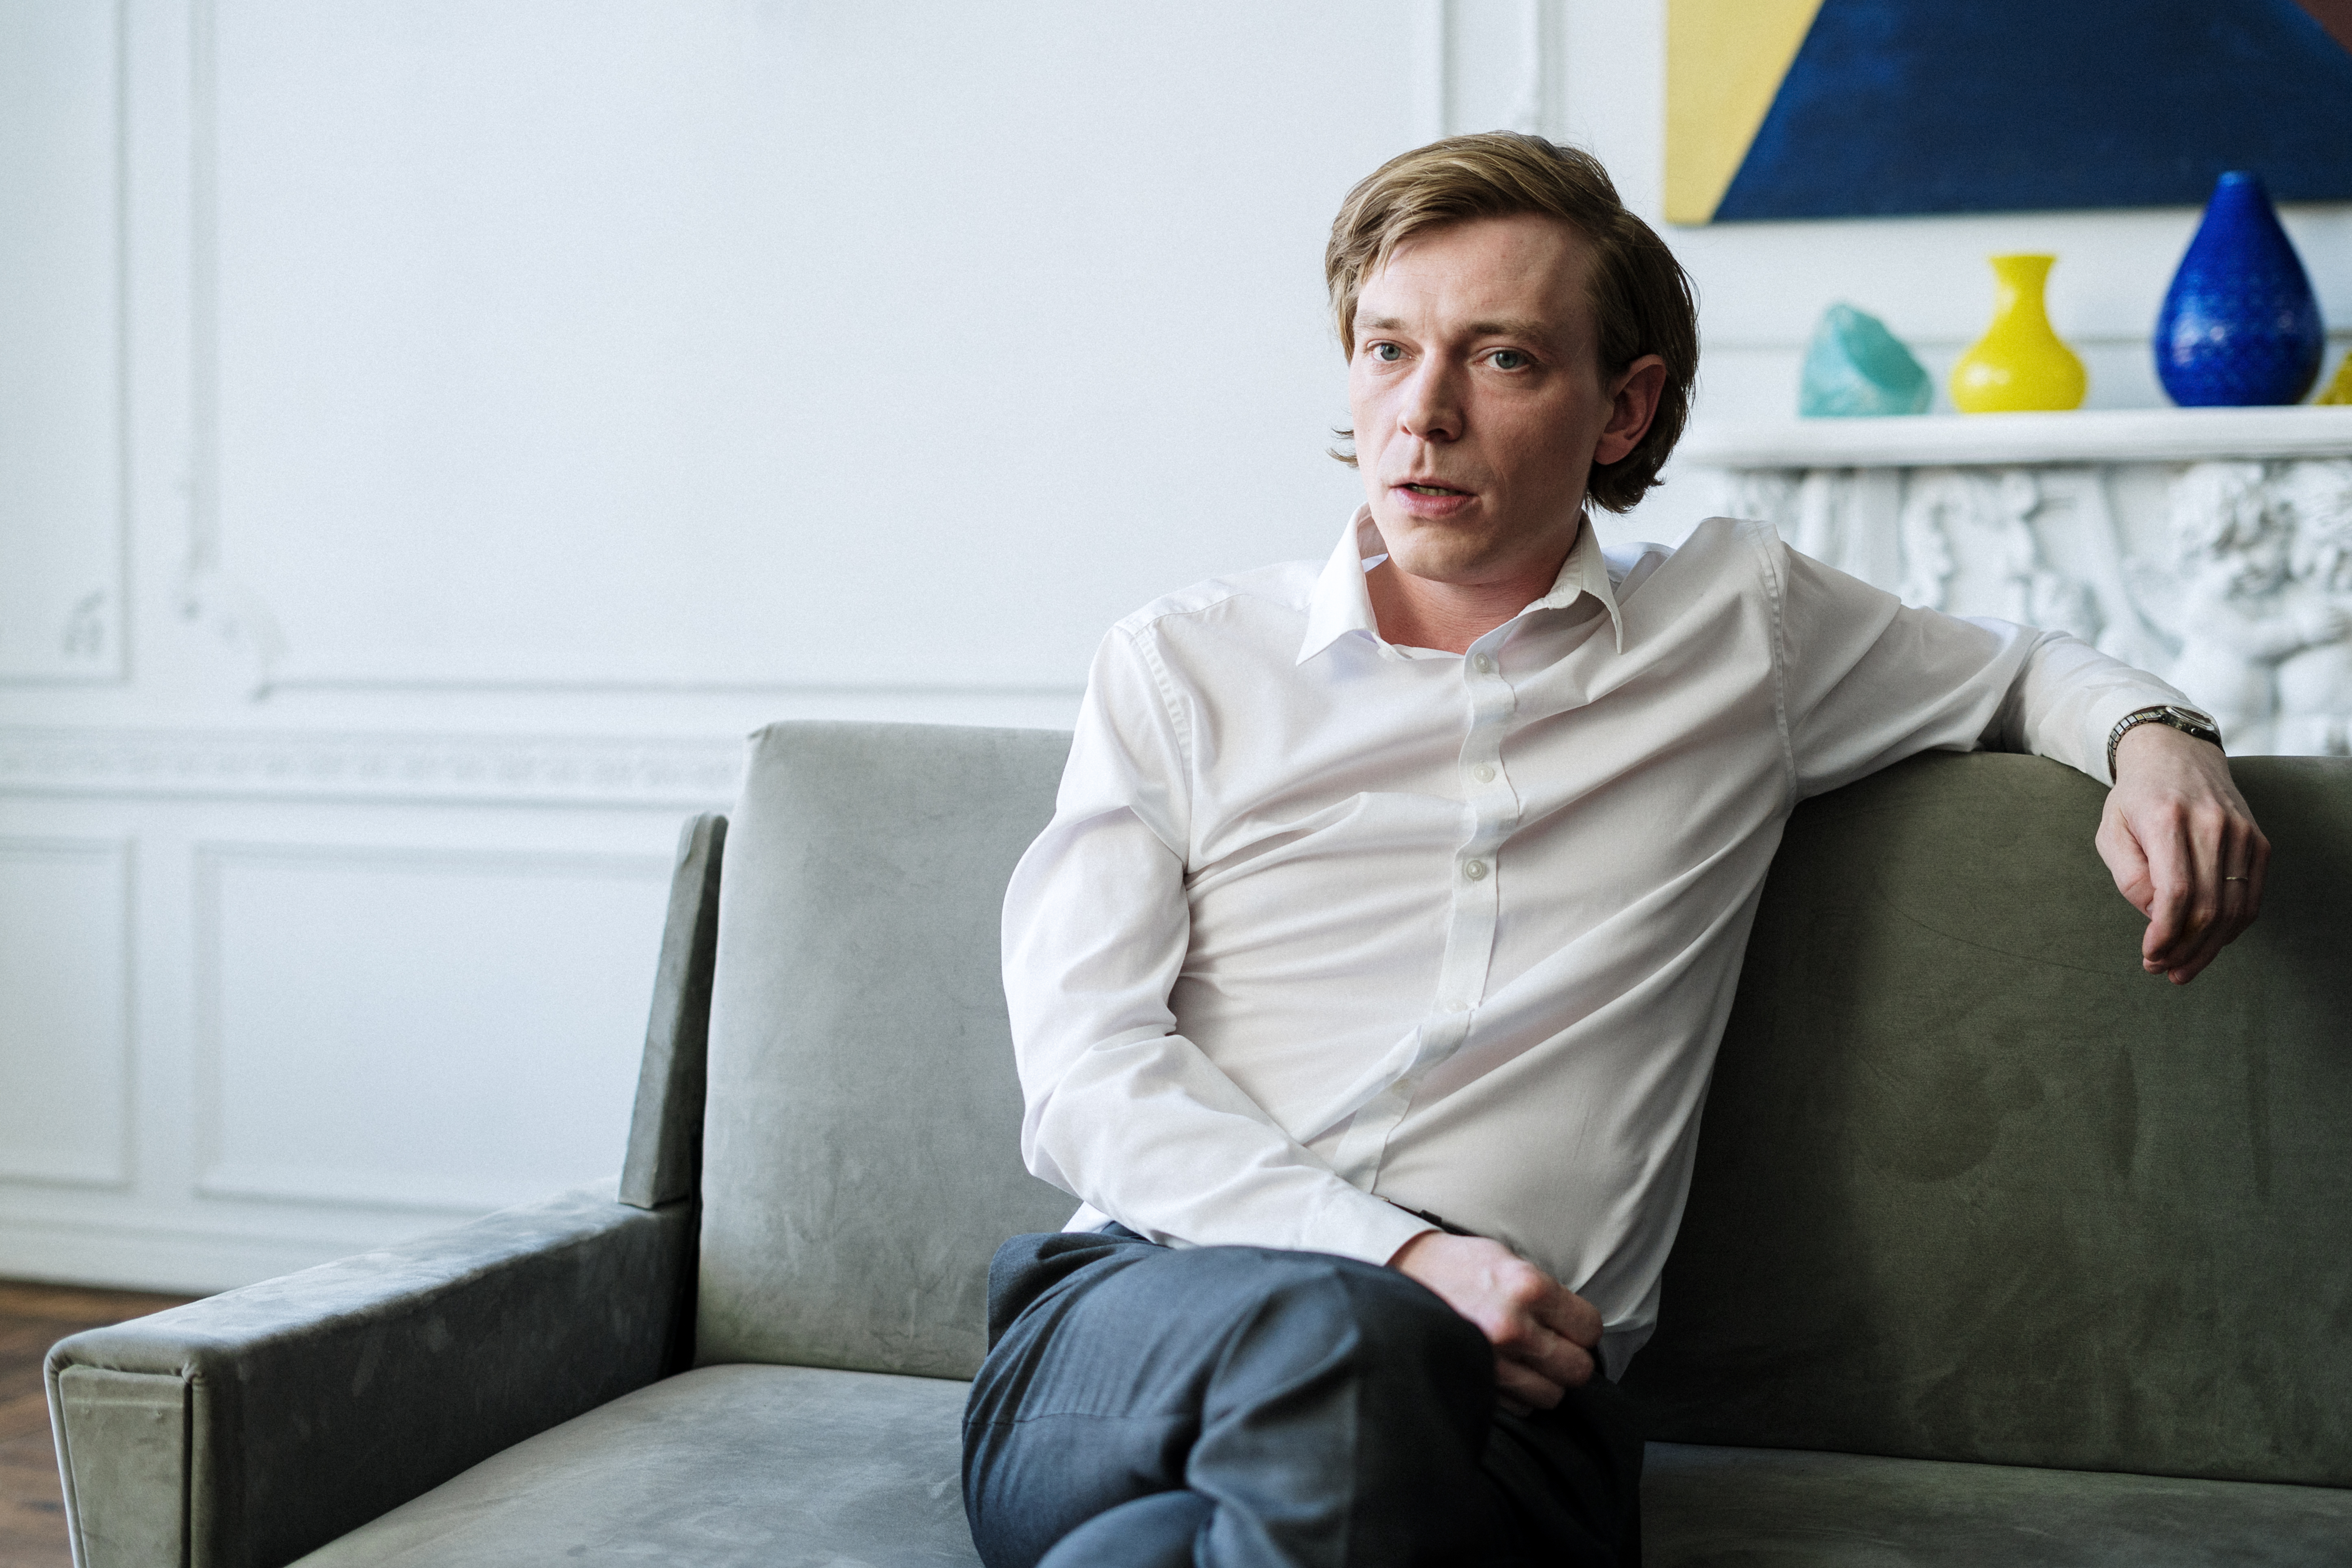 man in white dress shirt sitting on gray couch